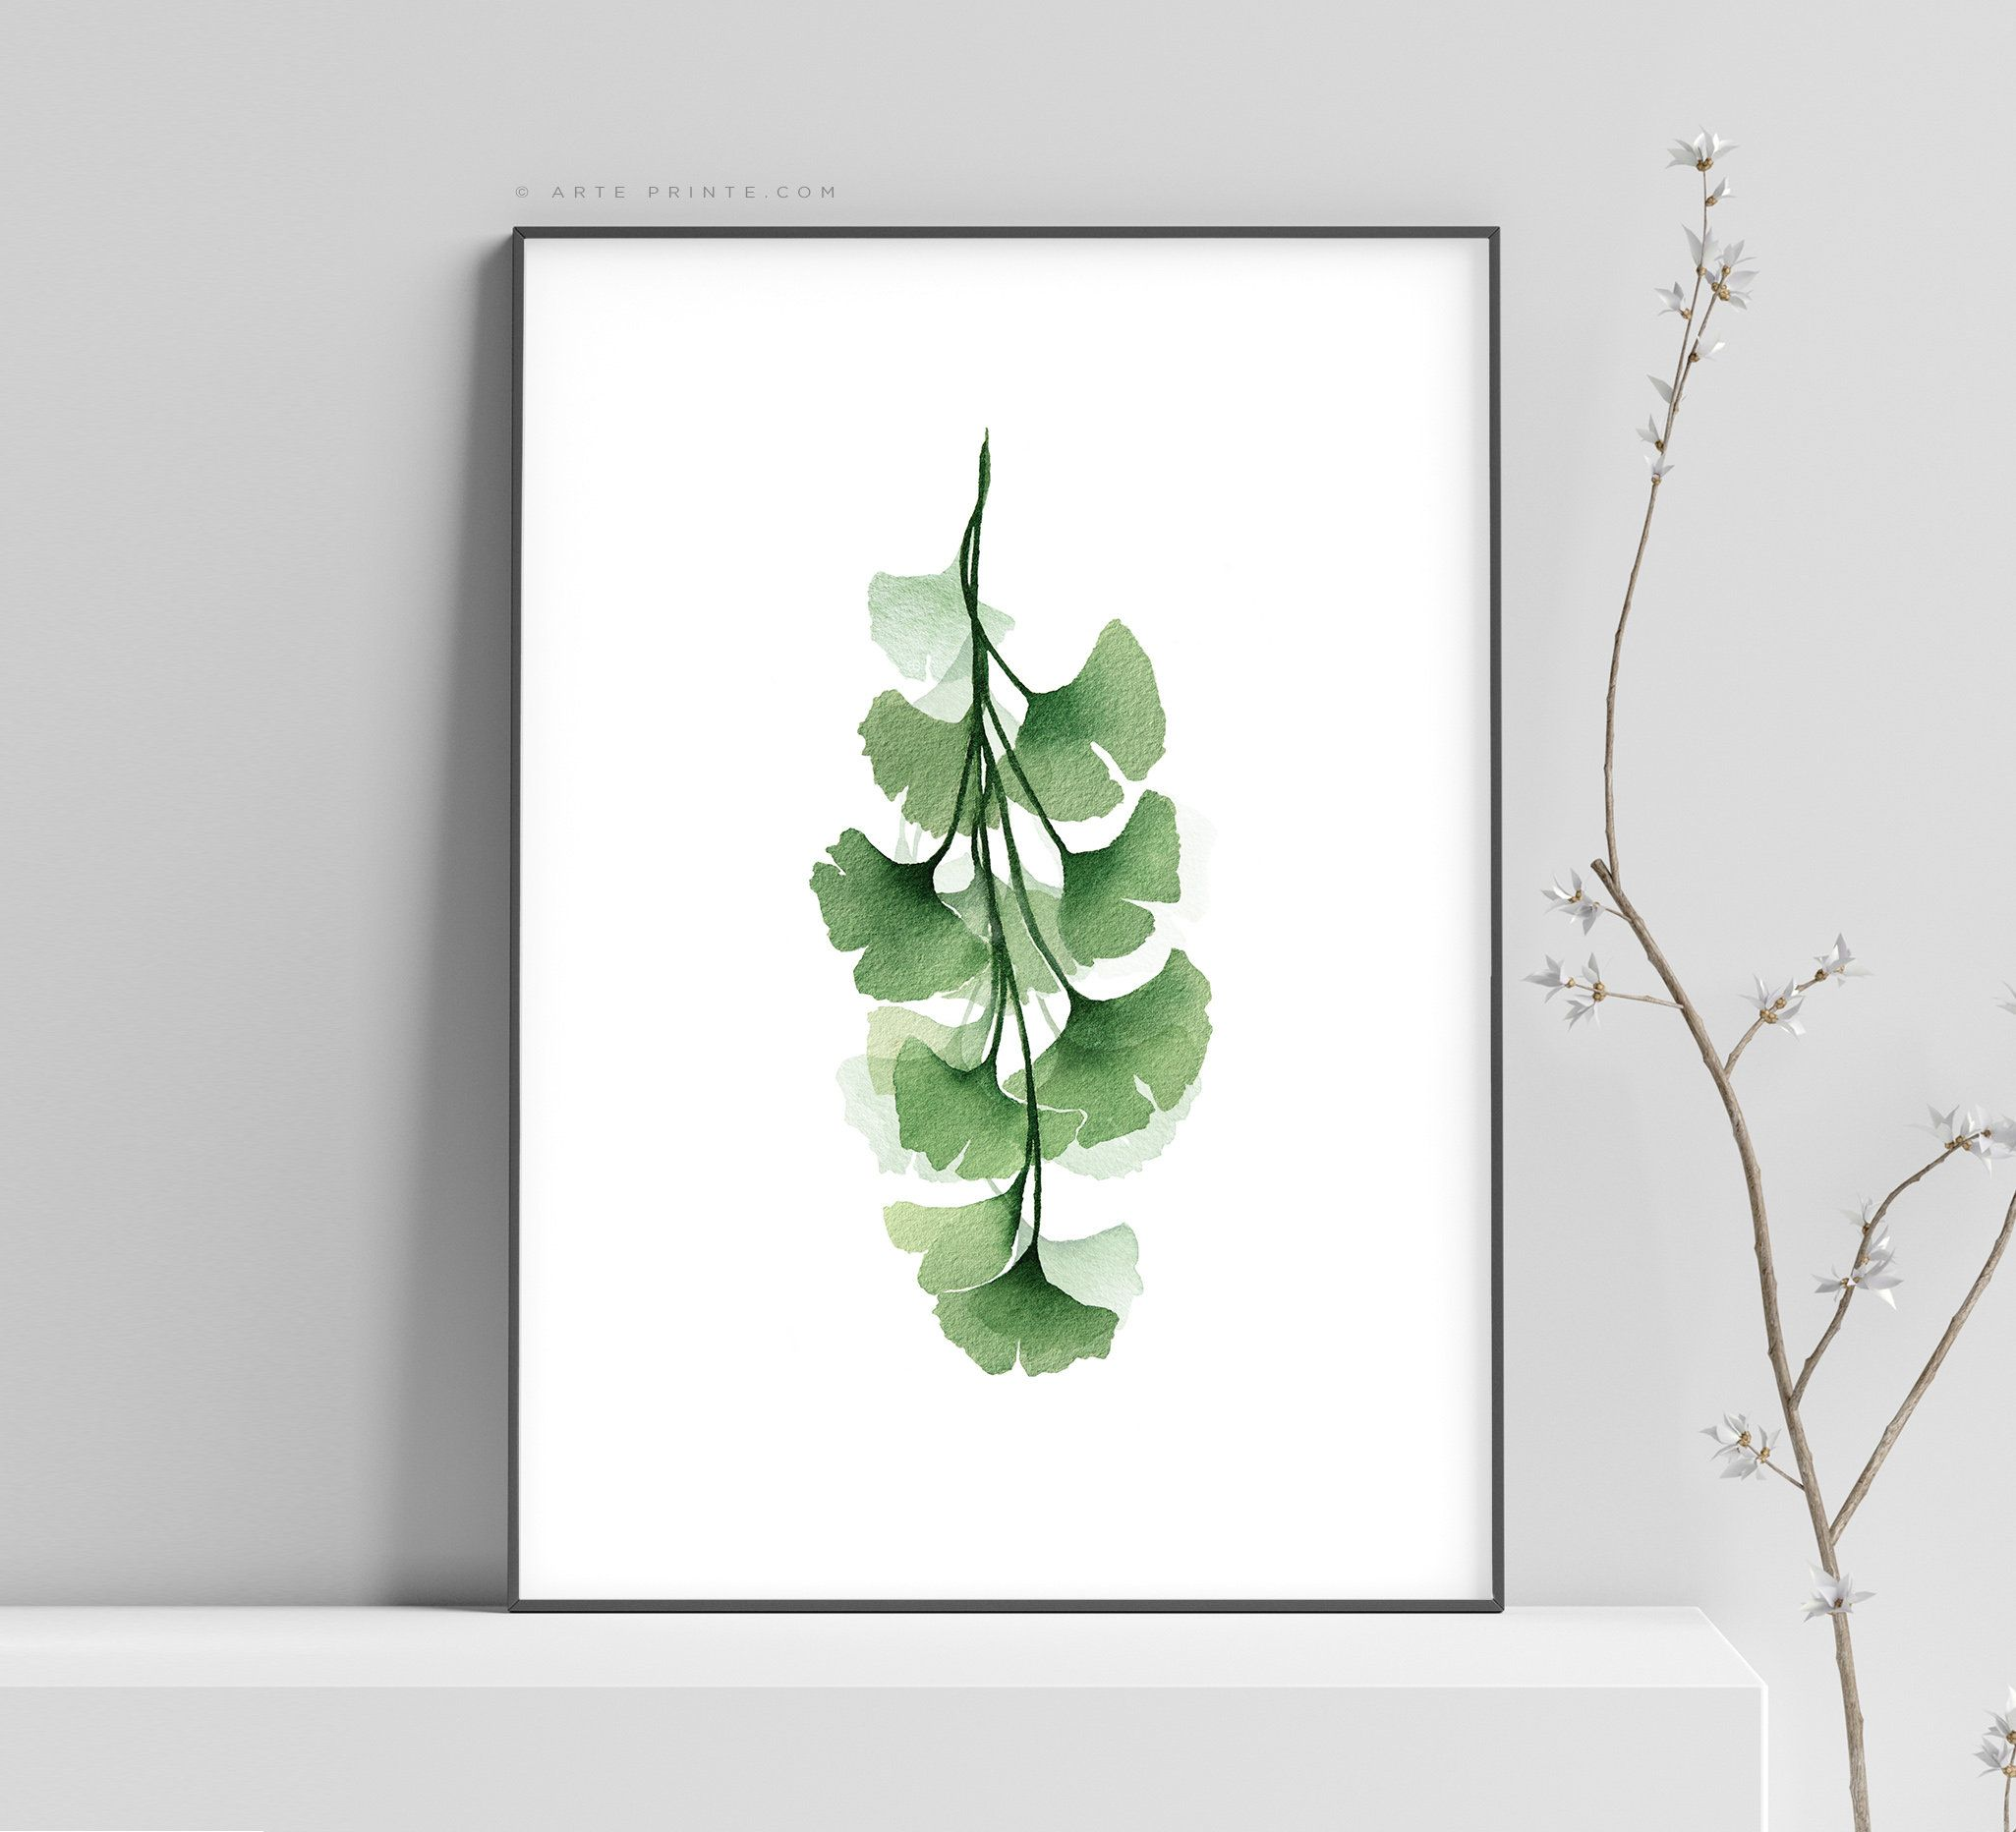 Modern Botanical Wall Art Watercolor Print Green Painting Ginkgo Biloba Leaves With Branch Plant Illustration Botanical Kitchen Wall Decor Botanical Wall Art Plant Illustration Framed Botanical Prints